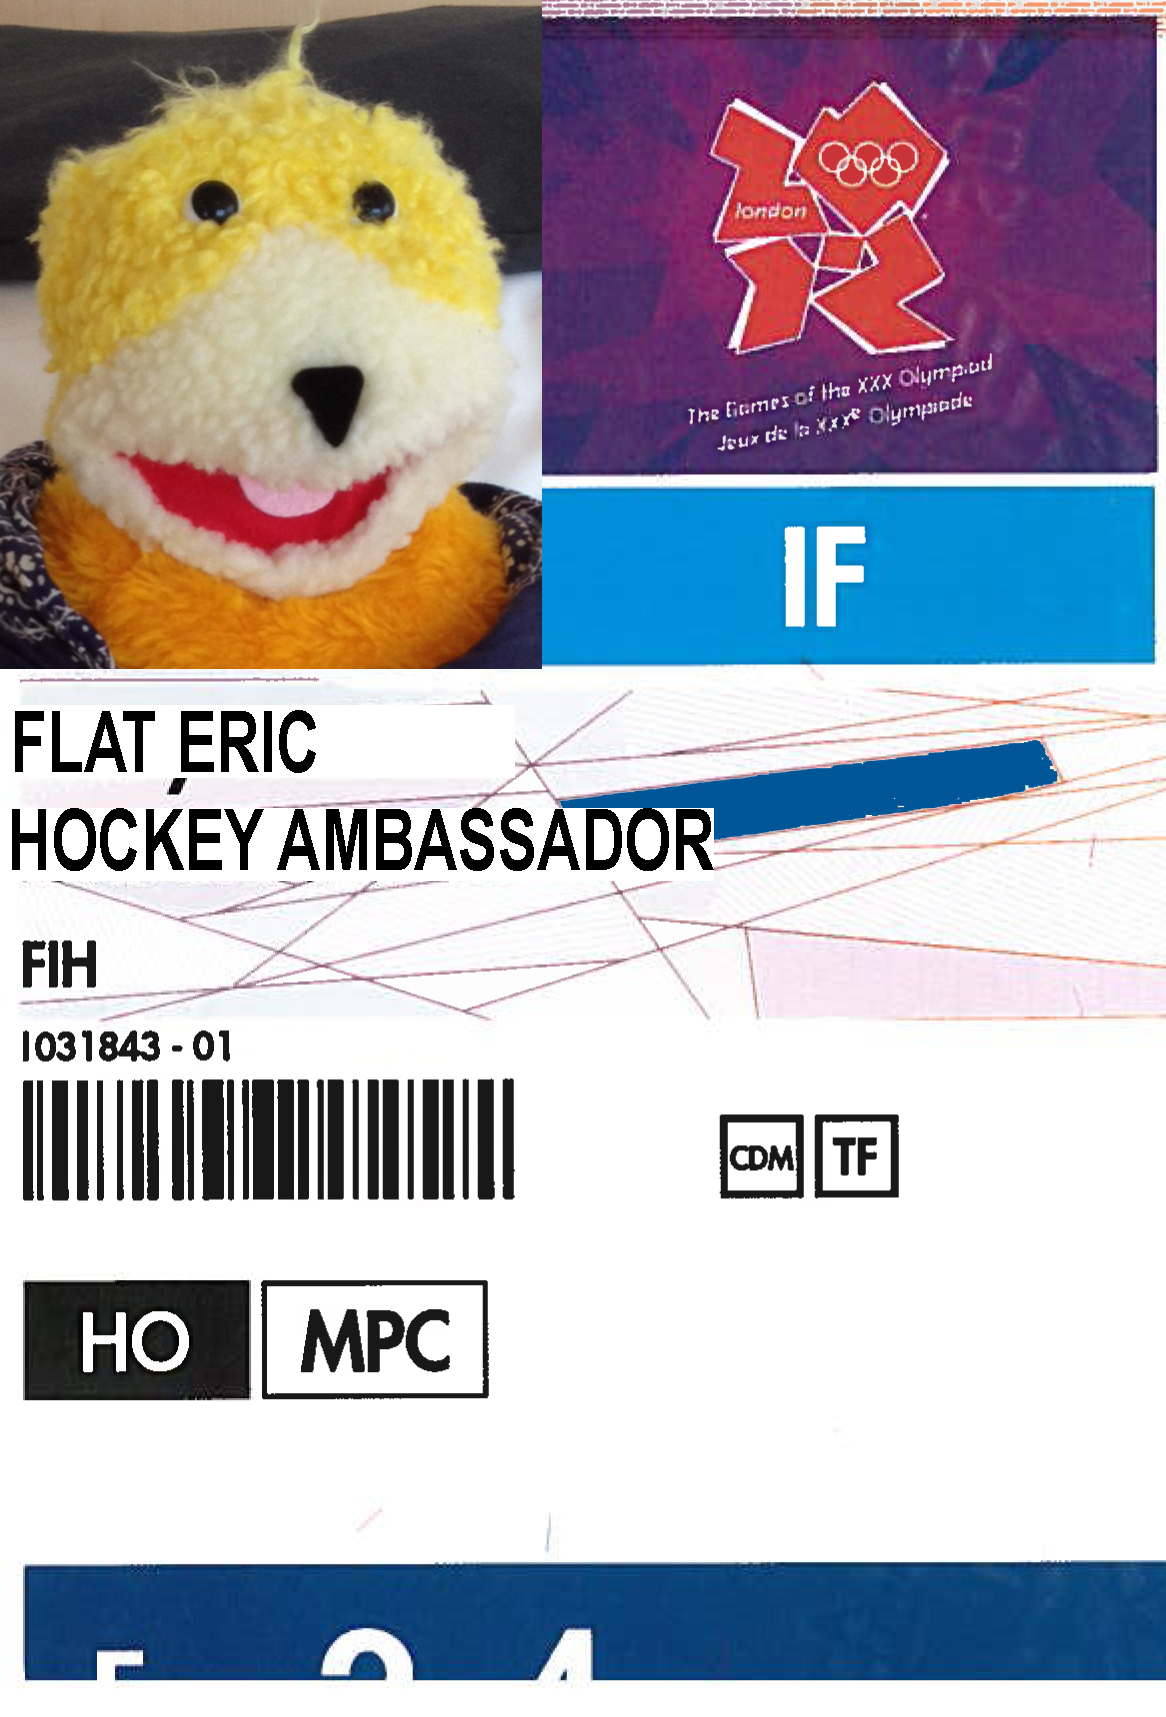 Flat Eric is ready to share London with the world!